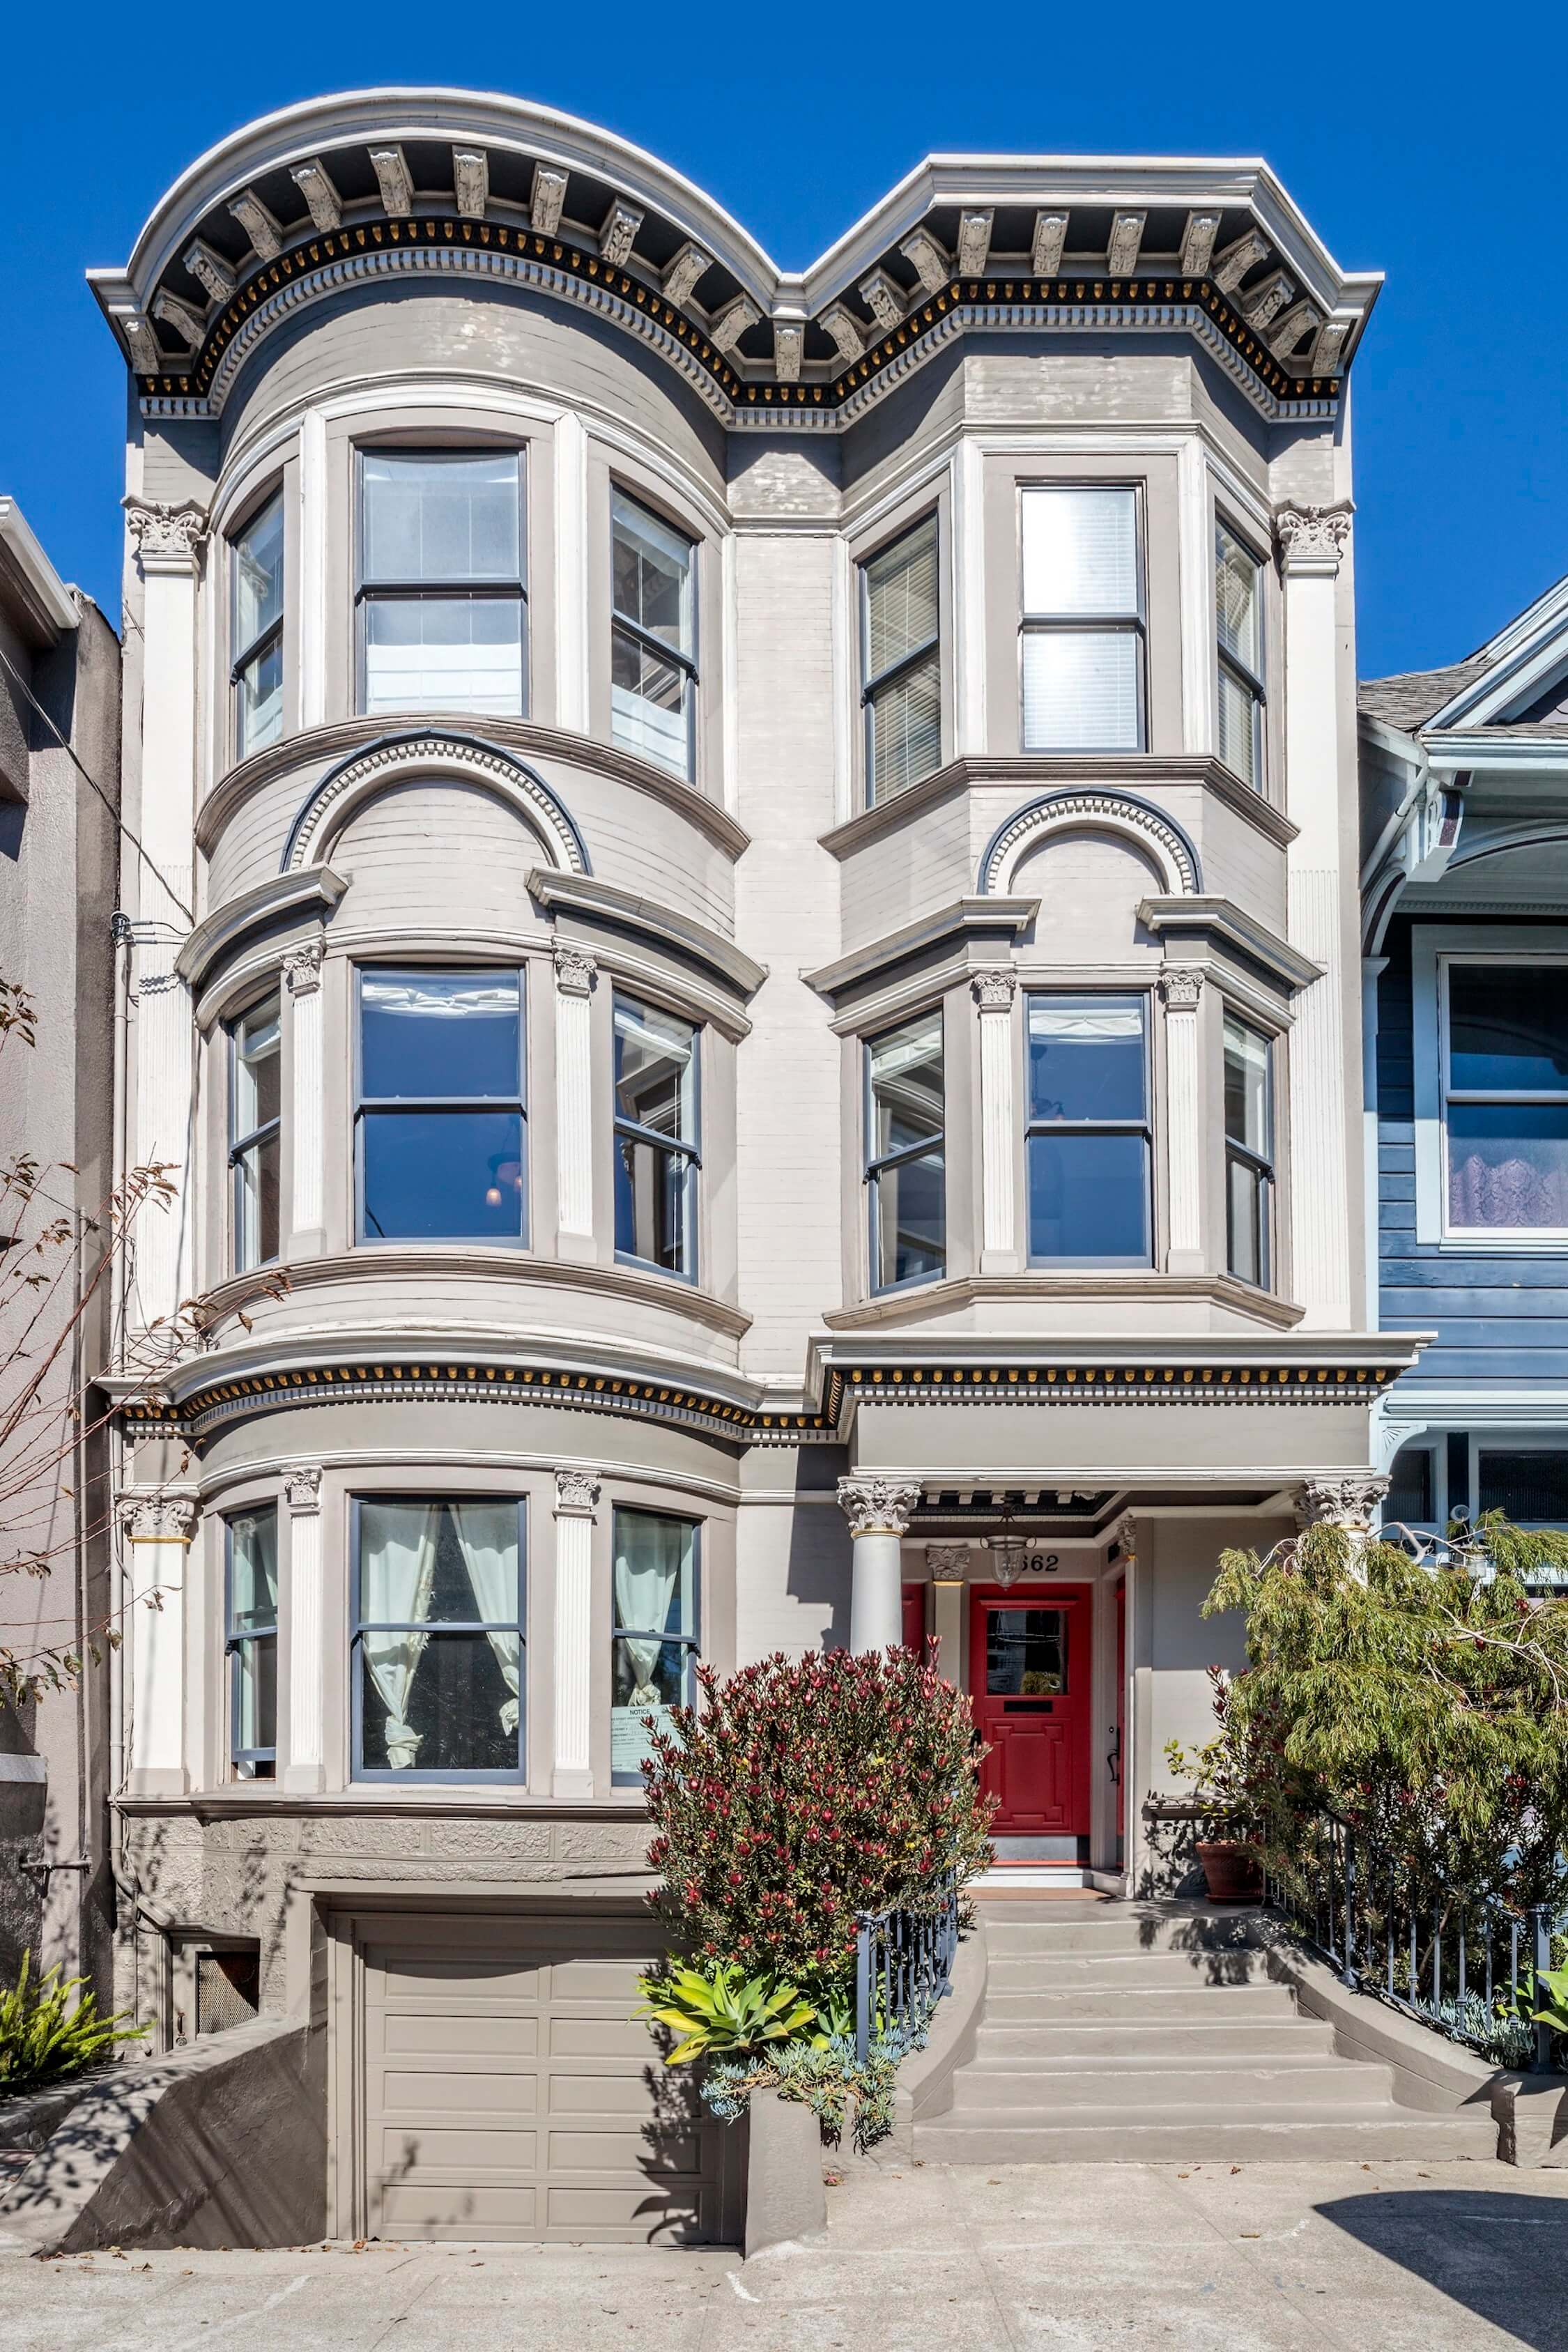 Haight Ashbury Victorian Flat Hits MLS Asking $1,700,000 – Wow Factor At 11